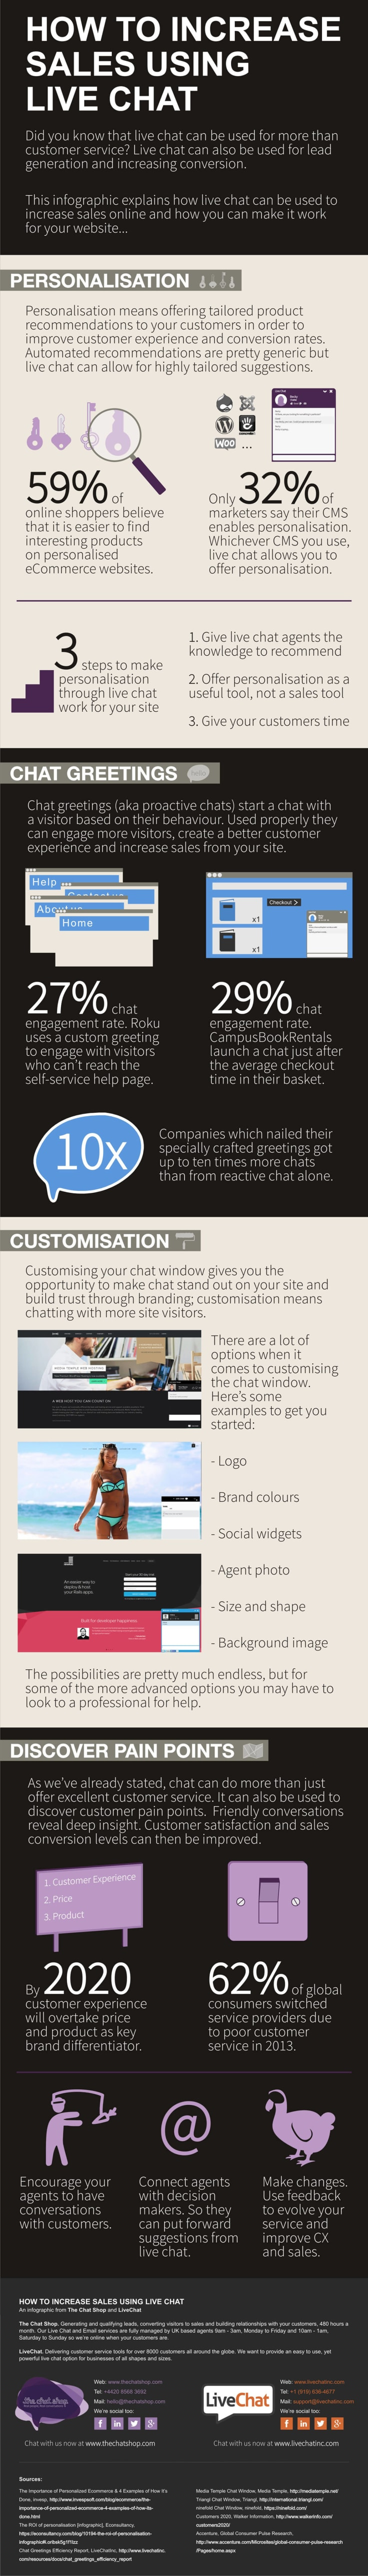 How to improve sales using live chat